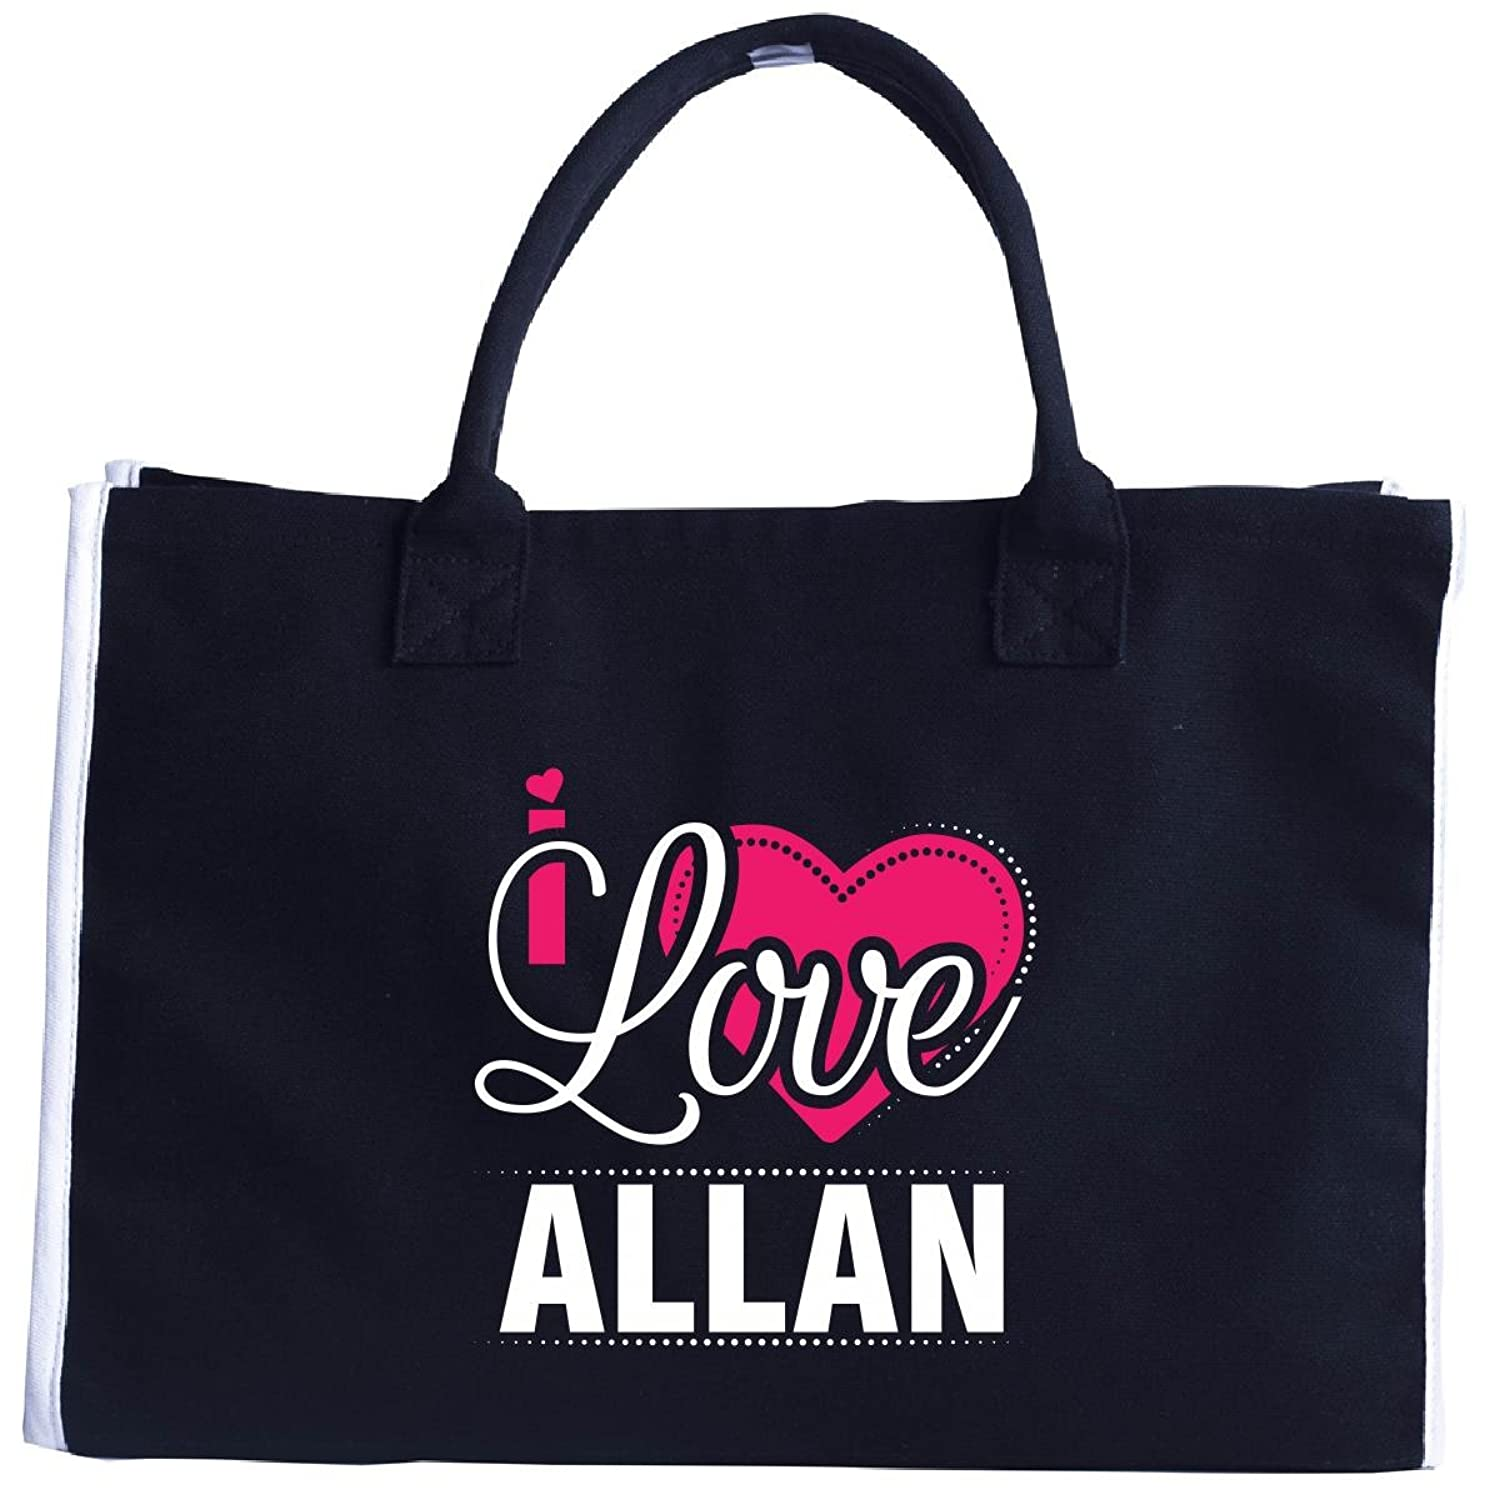 I Love Allan - Cool Gift For Allan From Girlfriend - Tote Bag